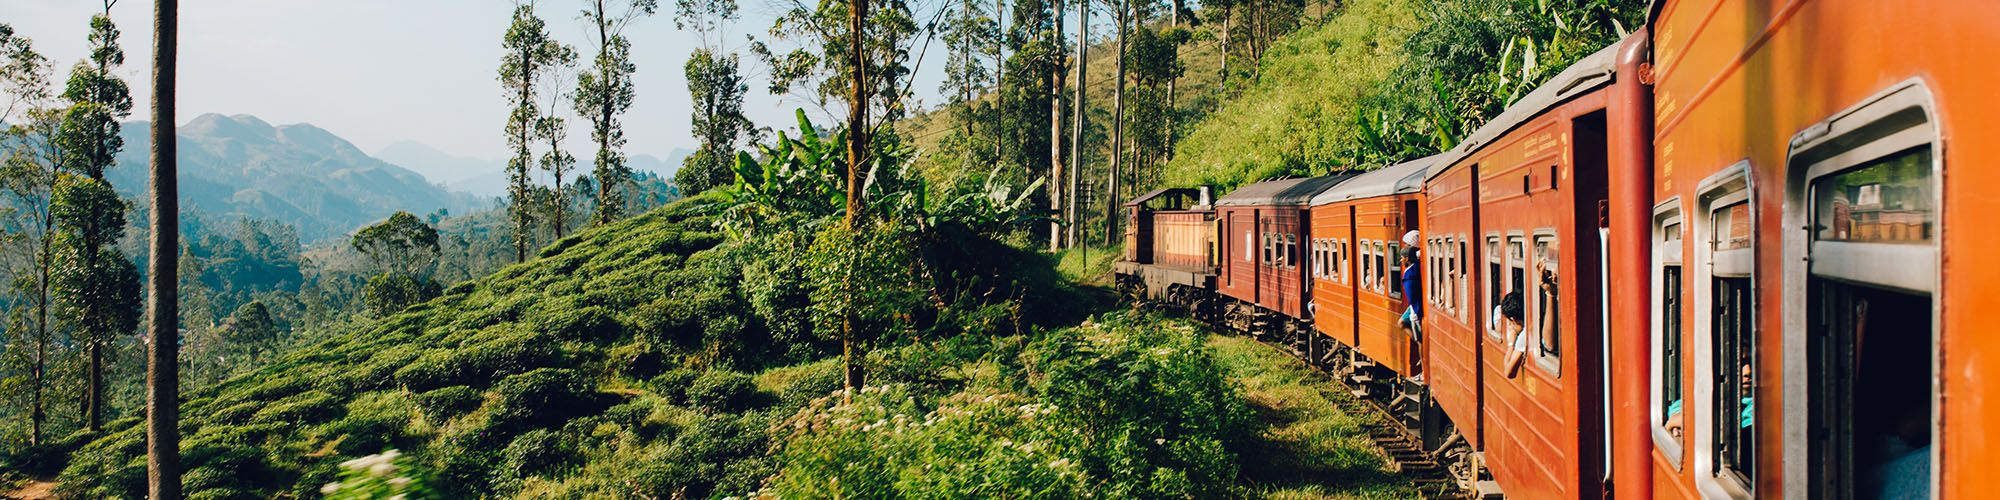 Sri Lanka, Kandy, Train, Paysages